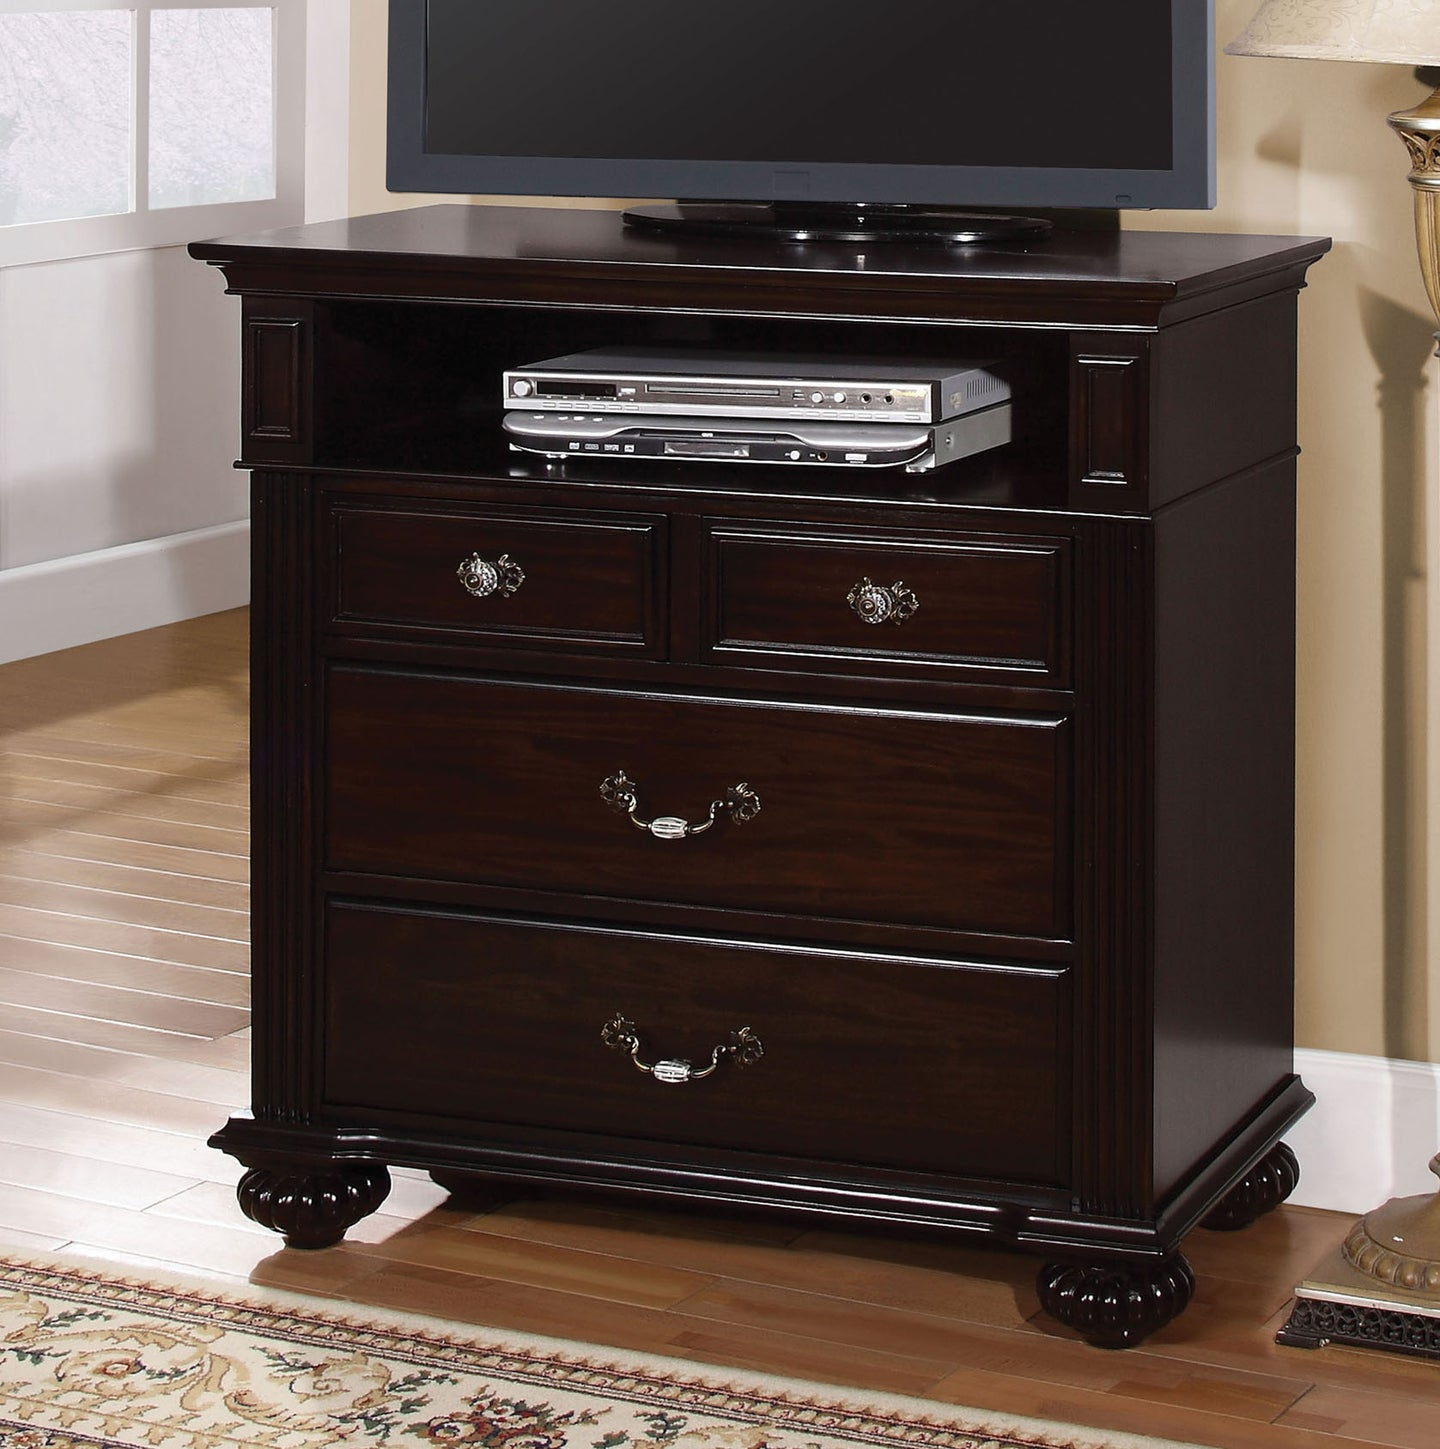 Syracuse CM7129TV Transitional Dark Walnut Finish Media Chest